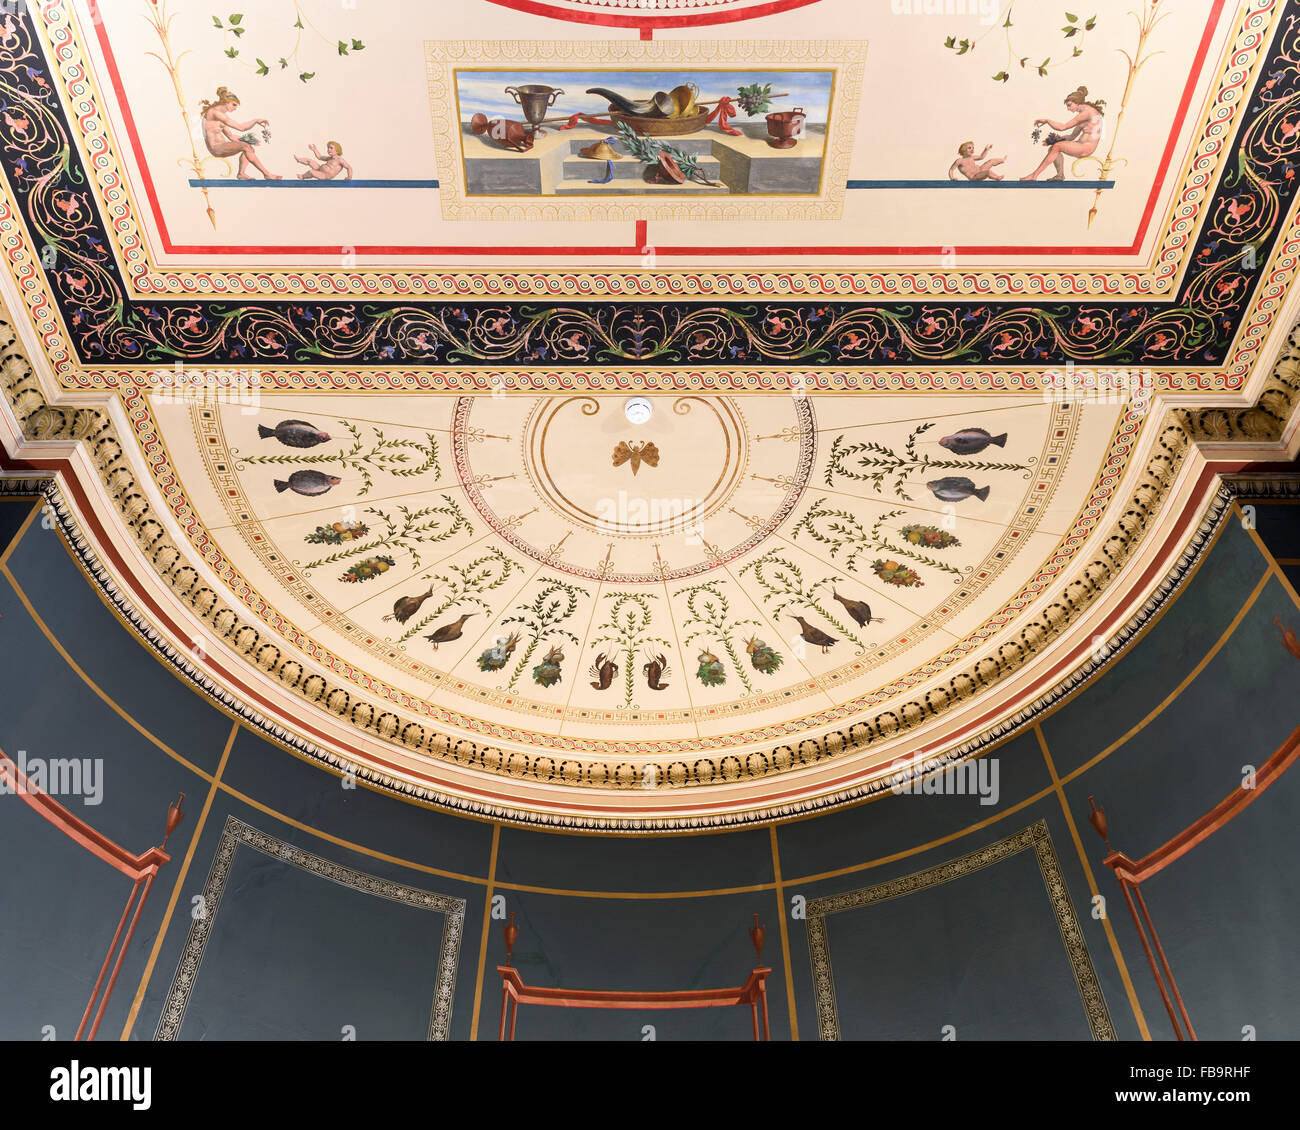 Ceiling of the Numismatic Museum, which houses one of the largest collections of coins, ancient and modern, in the Stock Photo